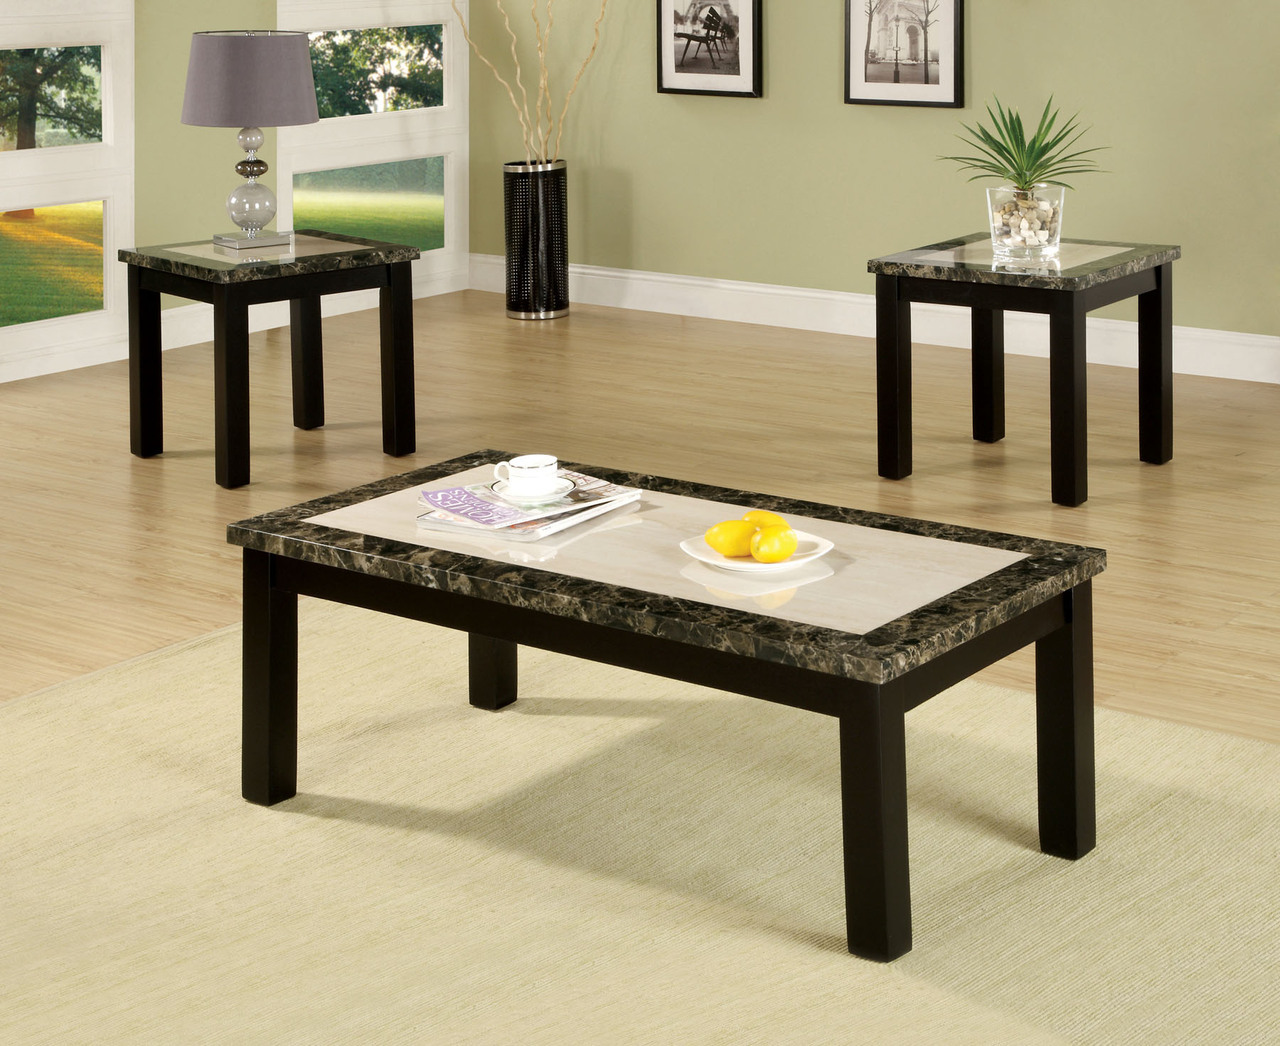 atlas black faux marble table top set coffee end tables and categories kmart baby clothes tempered glass furniture row jobs small round sofa rustic decor ashley hallway meijer